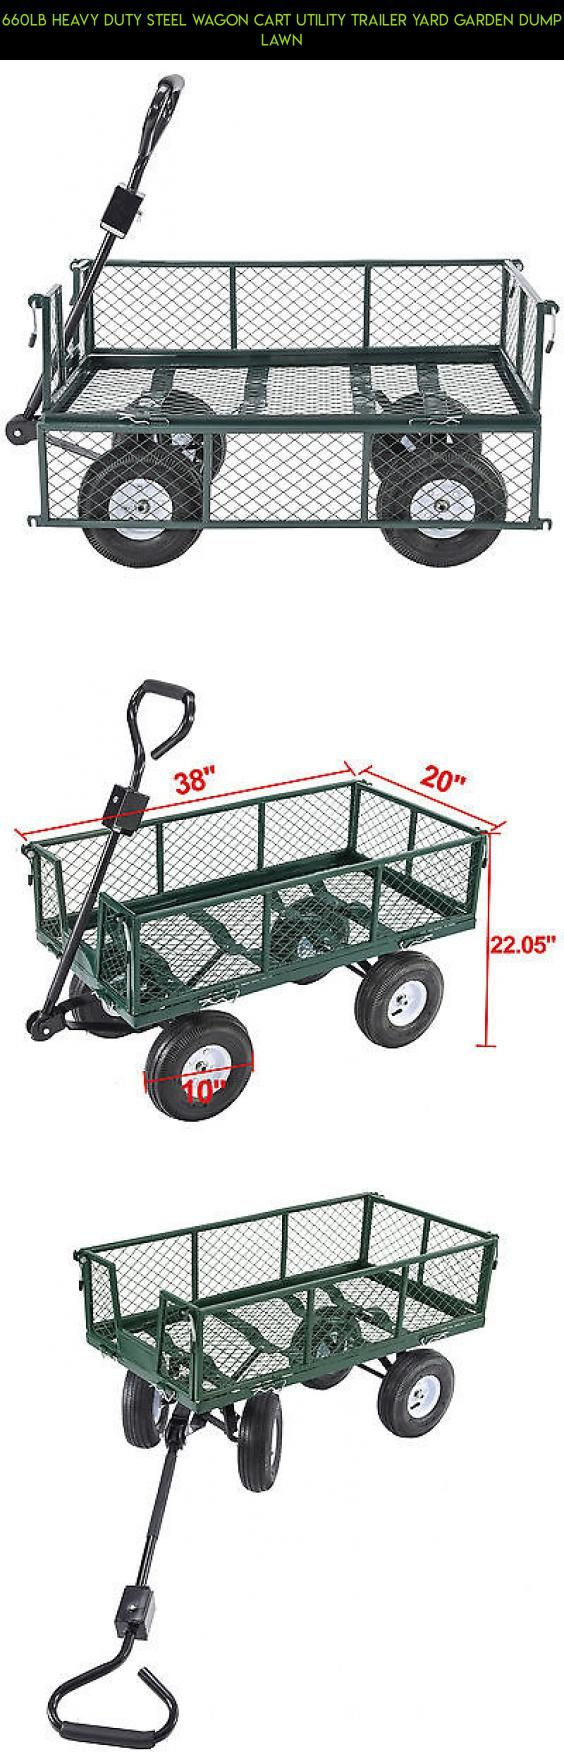 660LB Heavy Duty Steel Wagon Cart Utility Trailer Yard Garden Dump Lawn #parts #gardening #plans #drone #kit #shopping #technology #products #camera #cart #tech #gadgets #fpv #racing